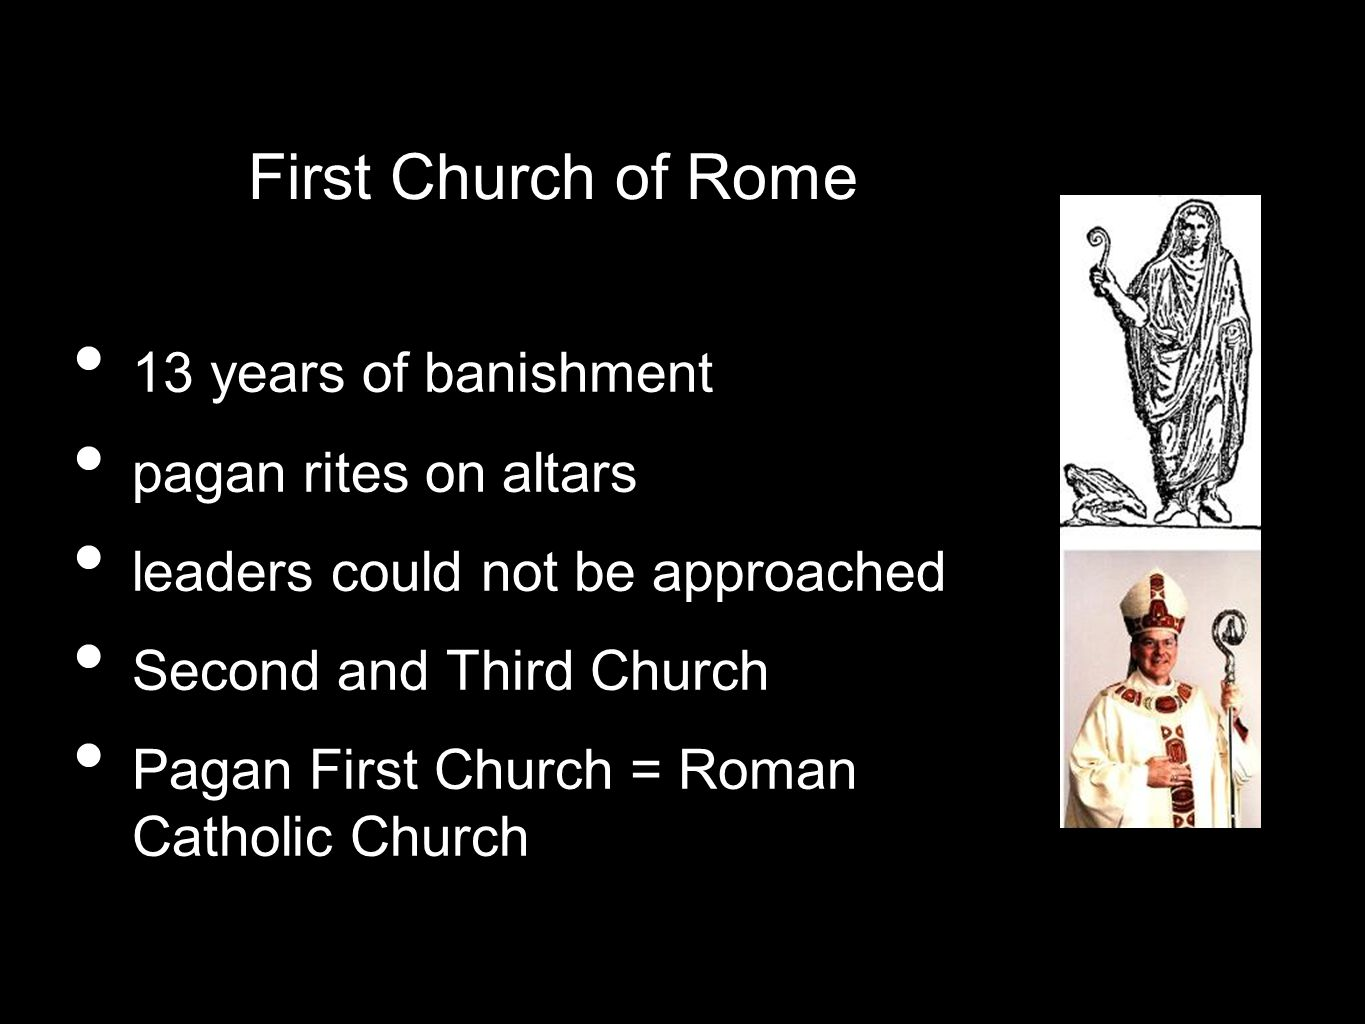 First Church of Rome 13 years of banishment pagan rites on altars